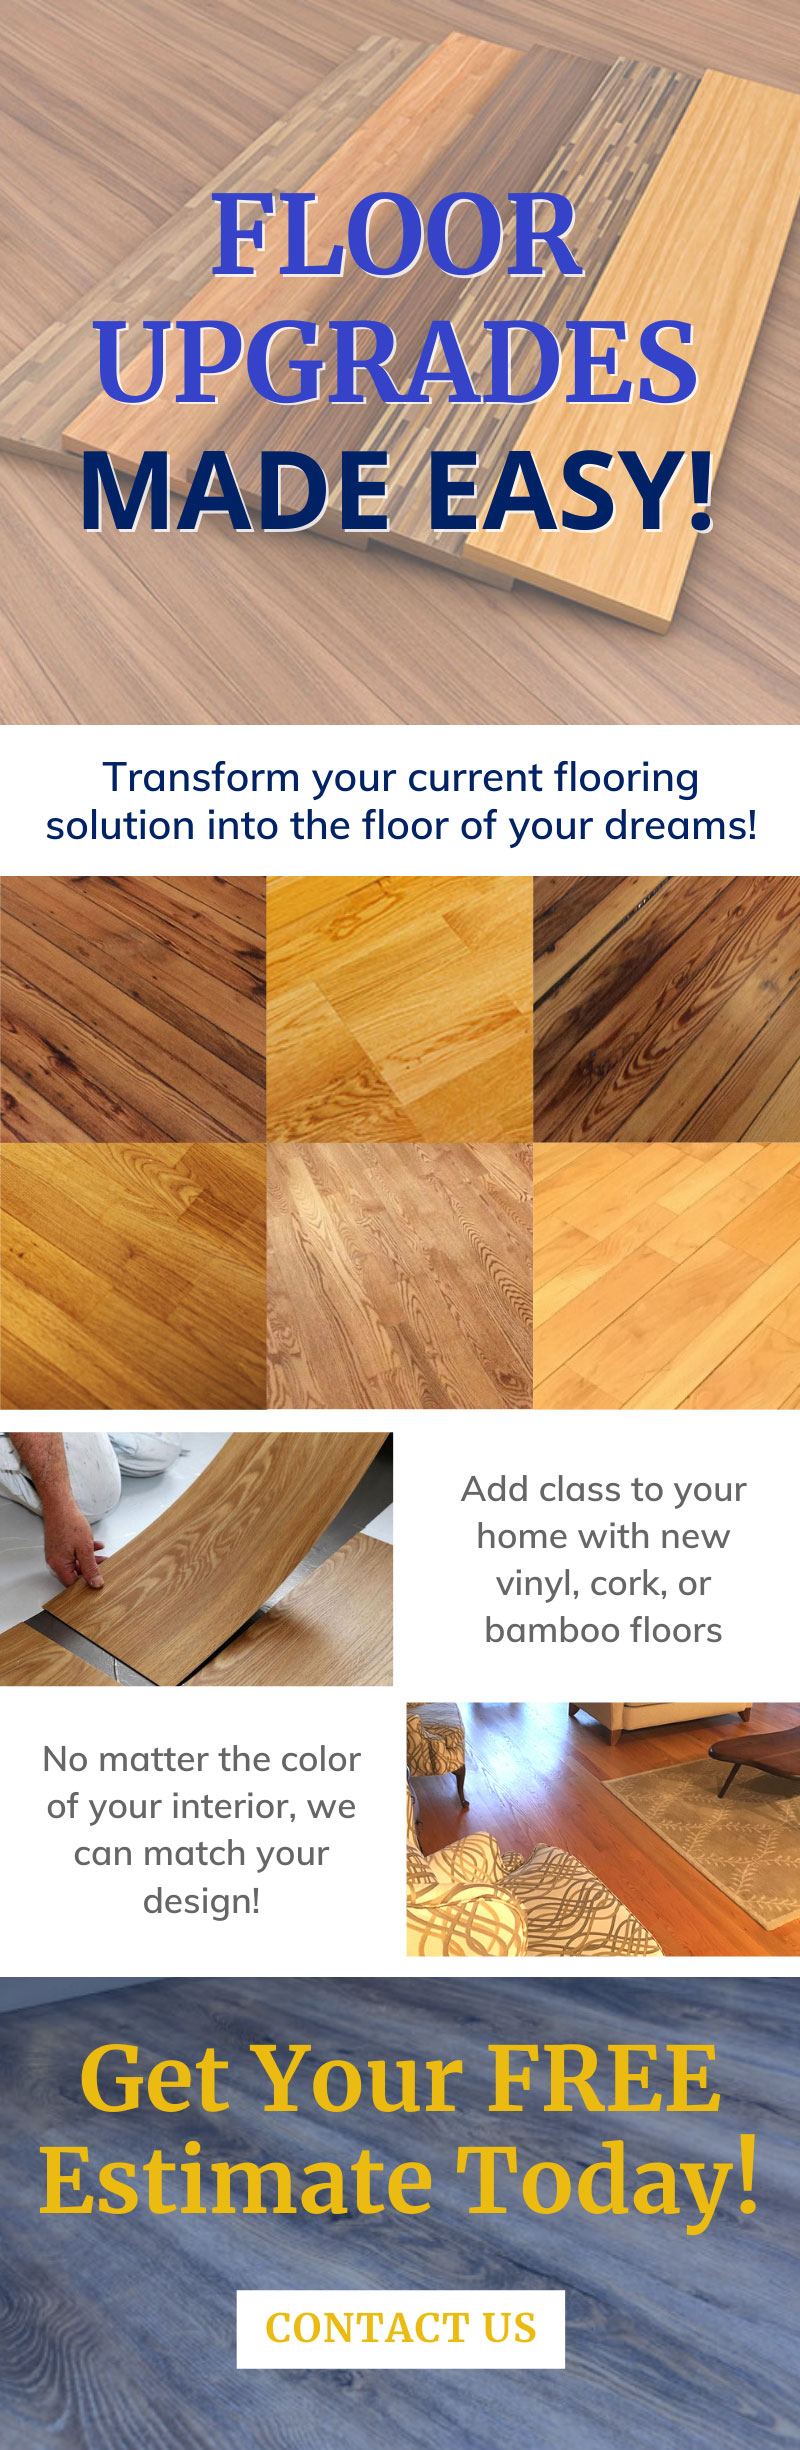 Upgrade Your Home's Floors! 👍 1